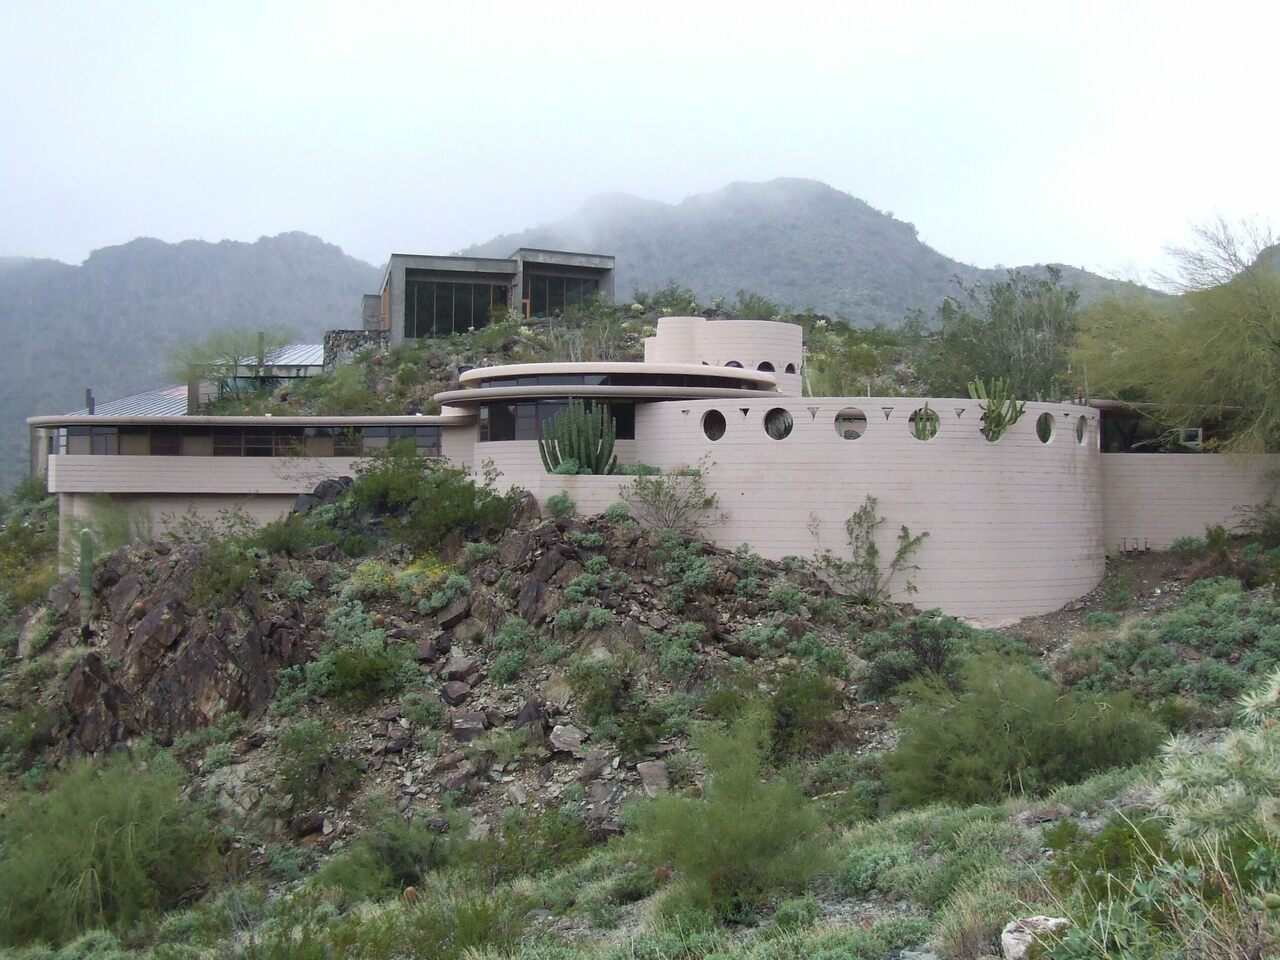 The Lykes House, nestled in the mountains of Phoenix, Arizona.